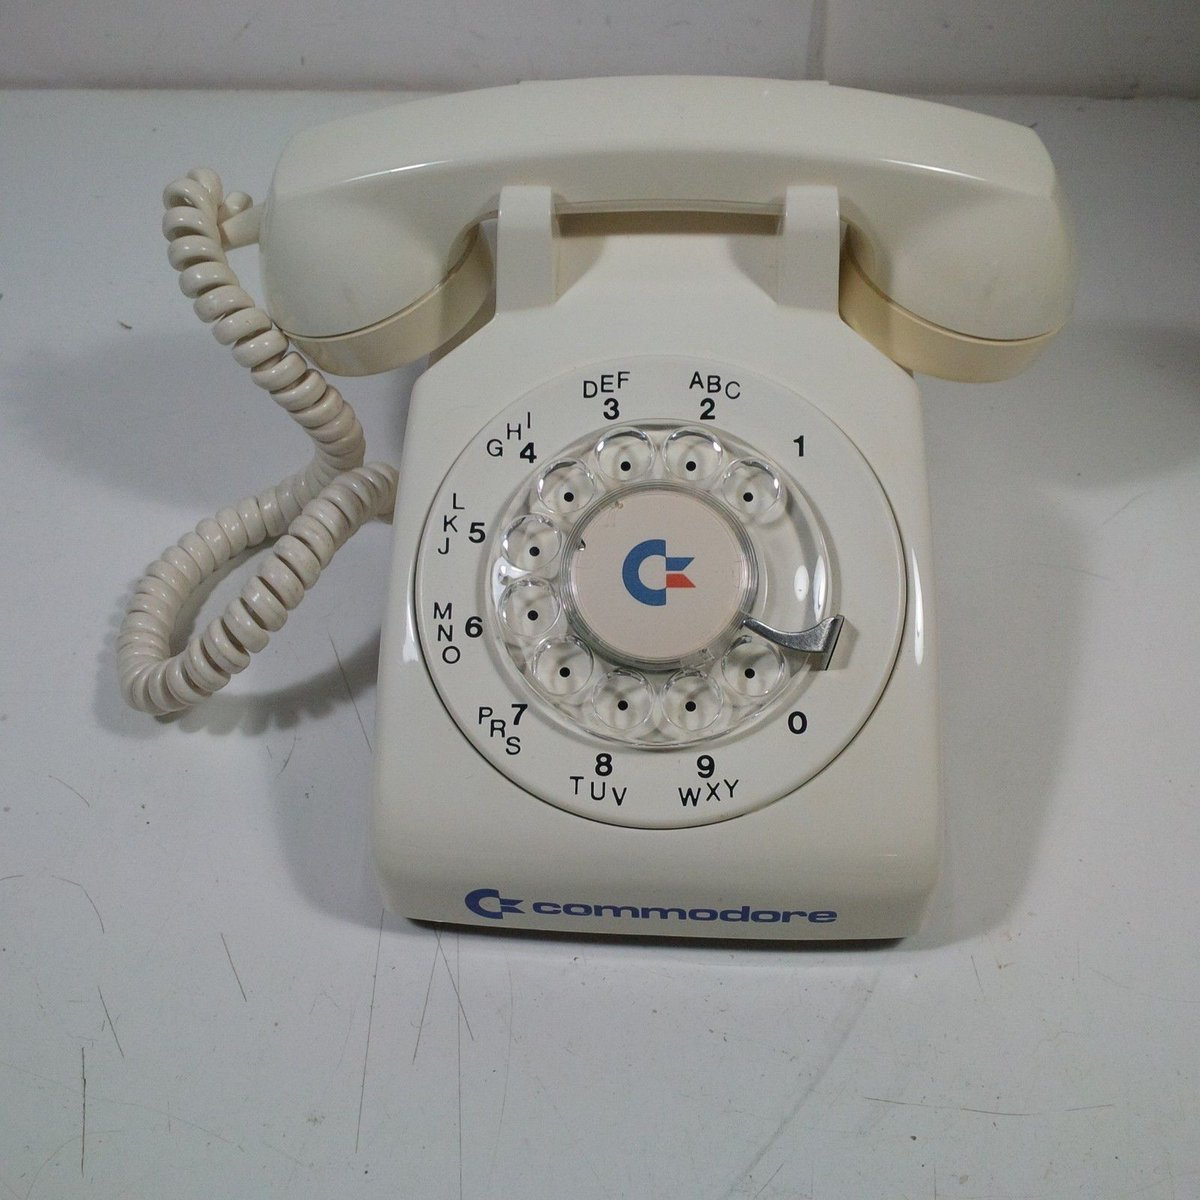 hight resolution of the ultimate accessory set for your vicmodem a commodore branded rotary phone